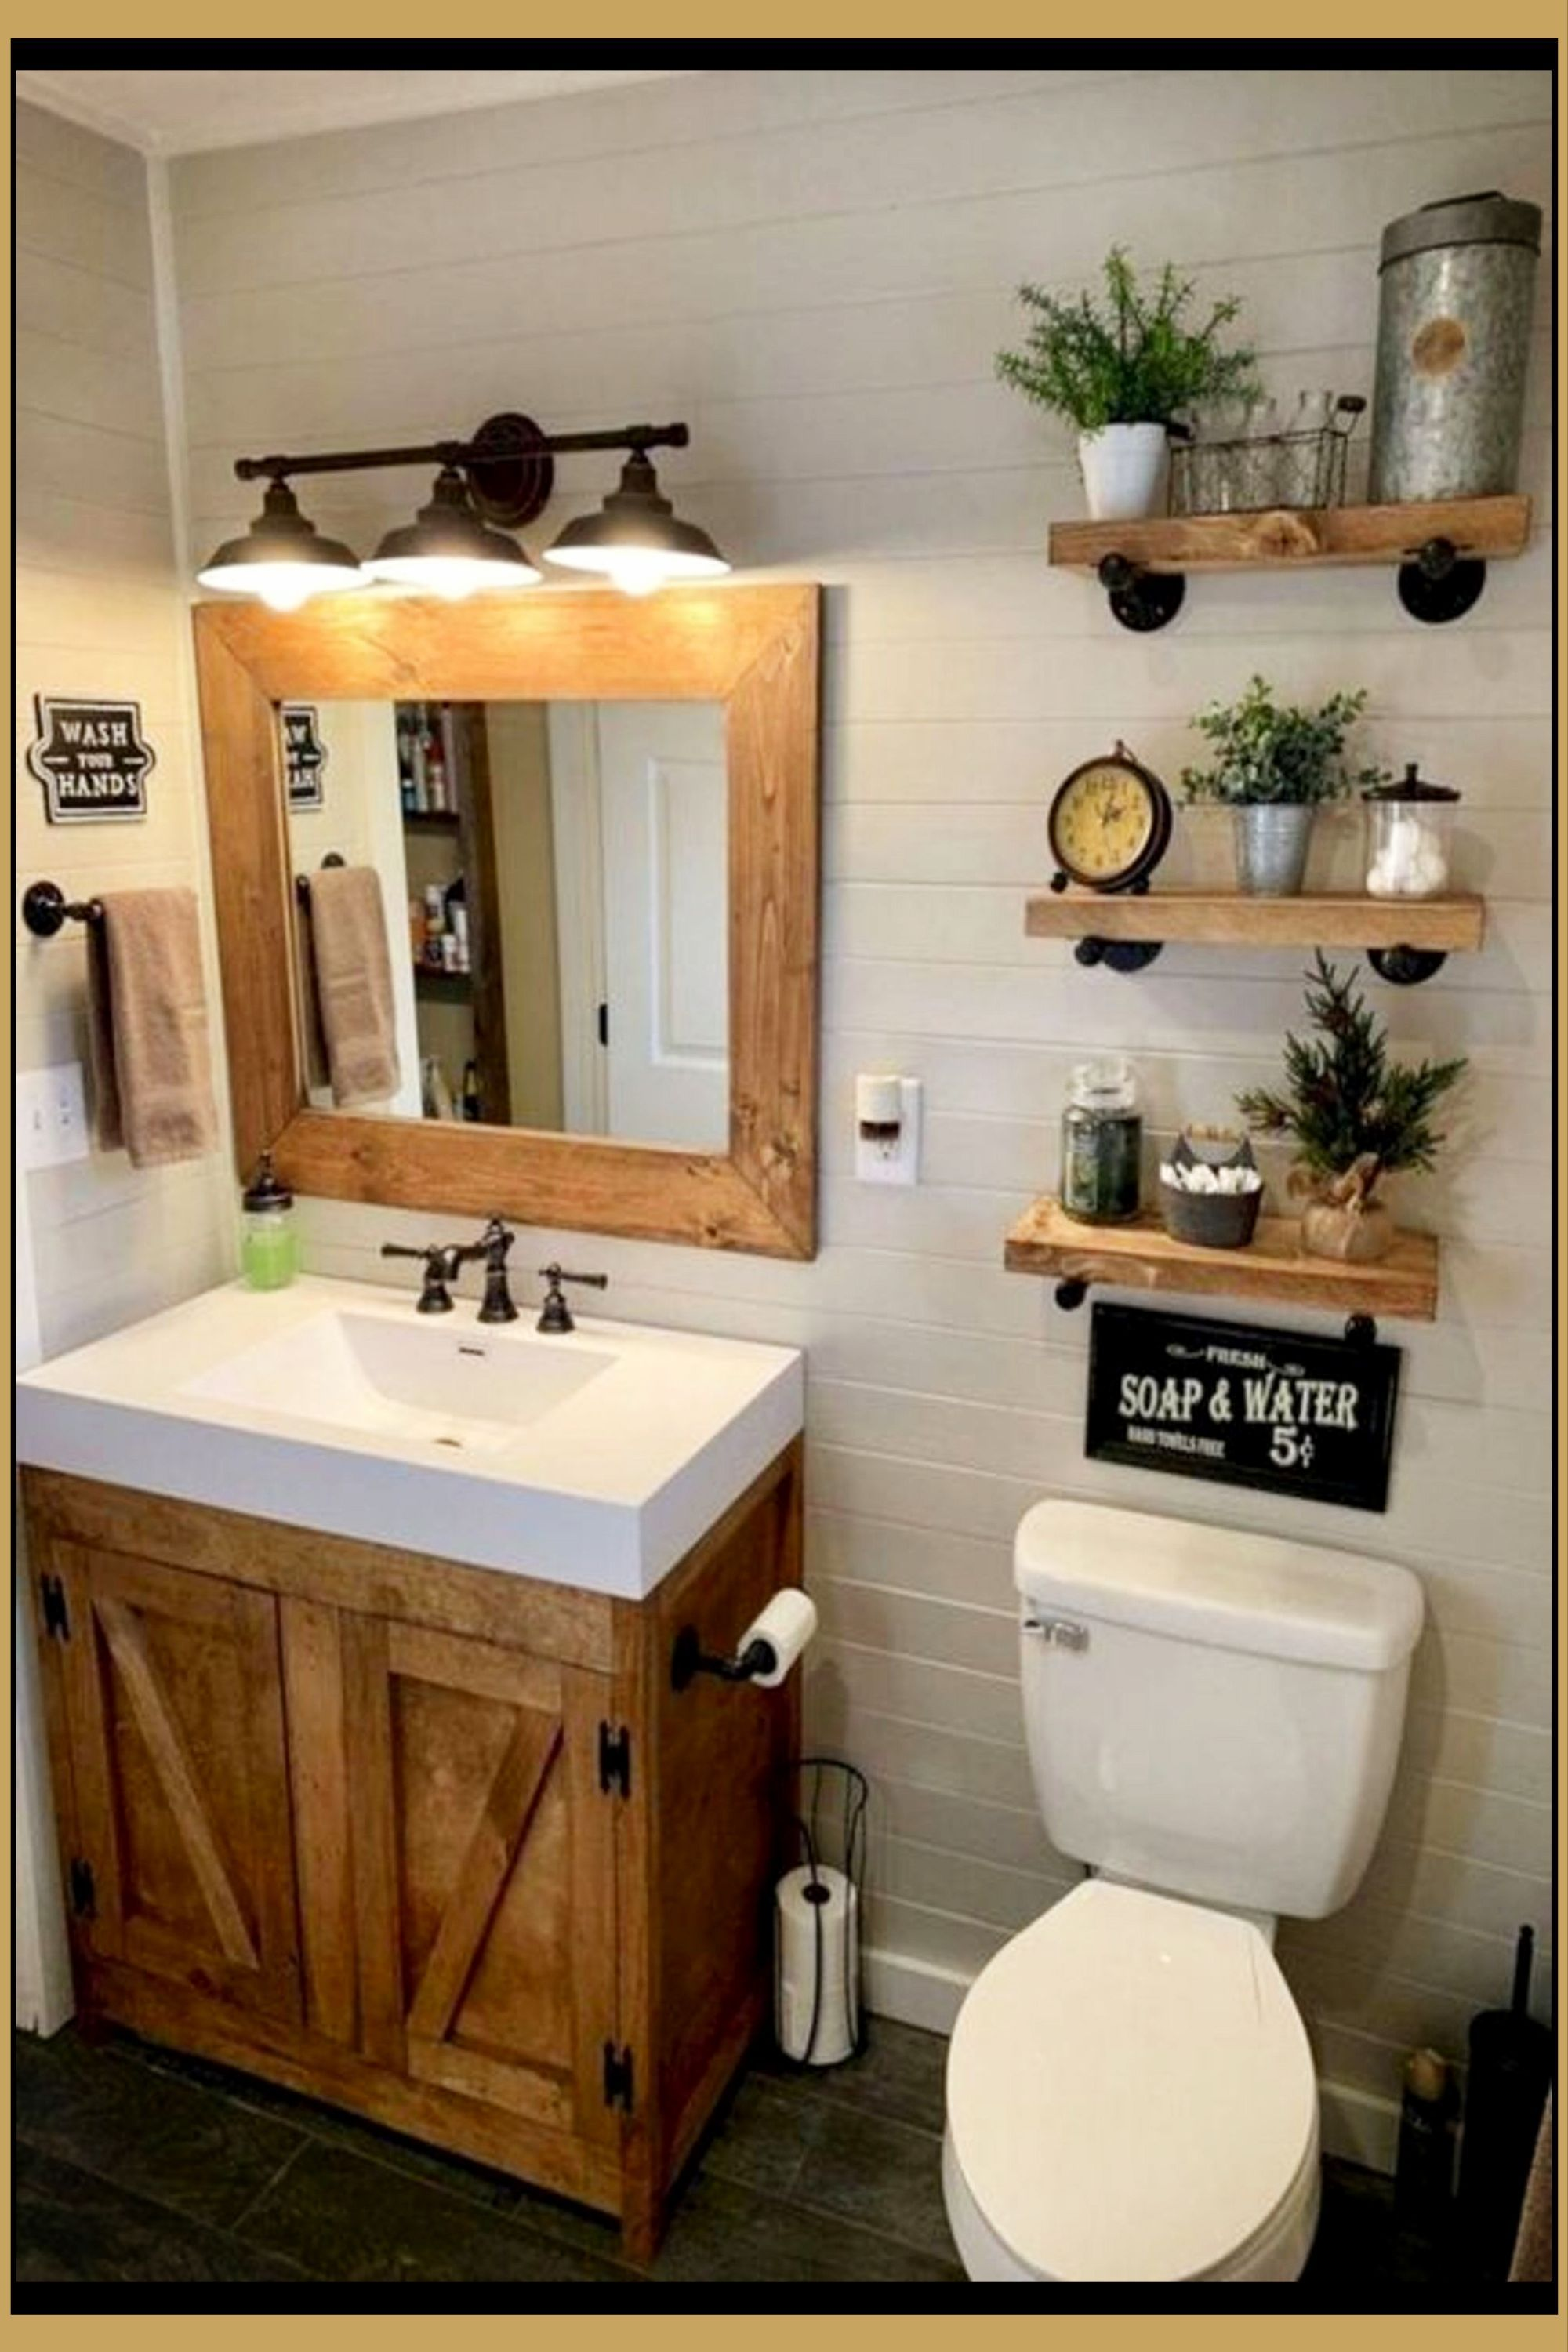 Photo of #Bathroom #Country #Decor #Decorating #ideas #Outhouse o